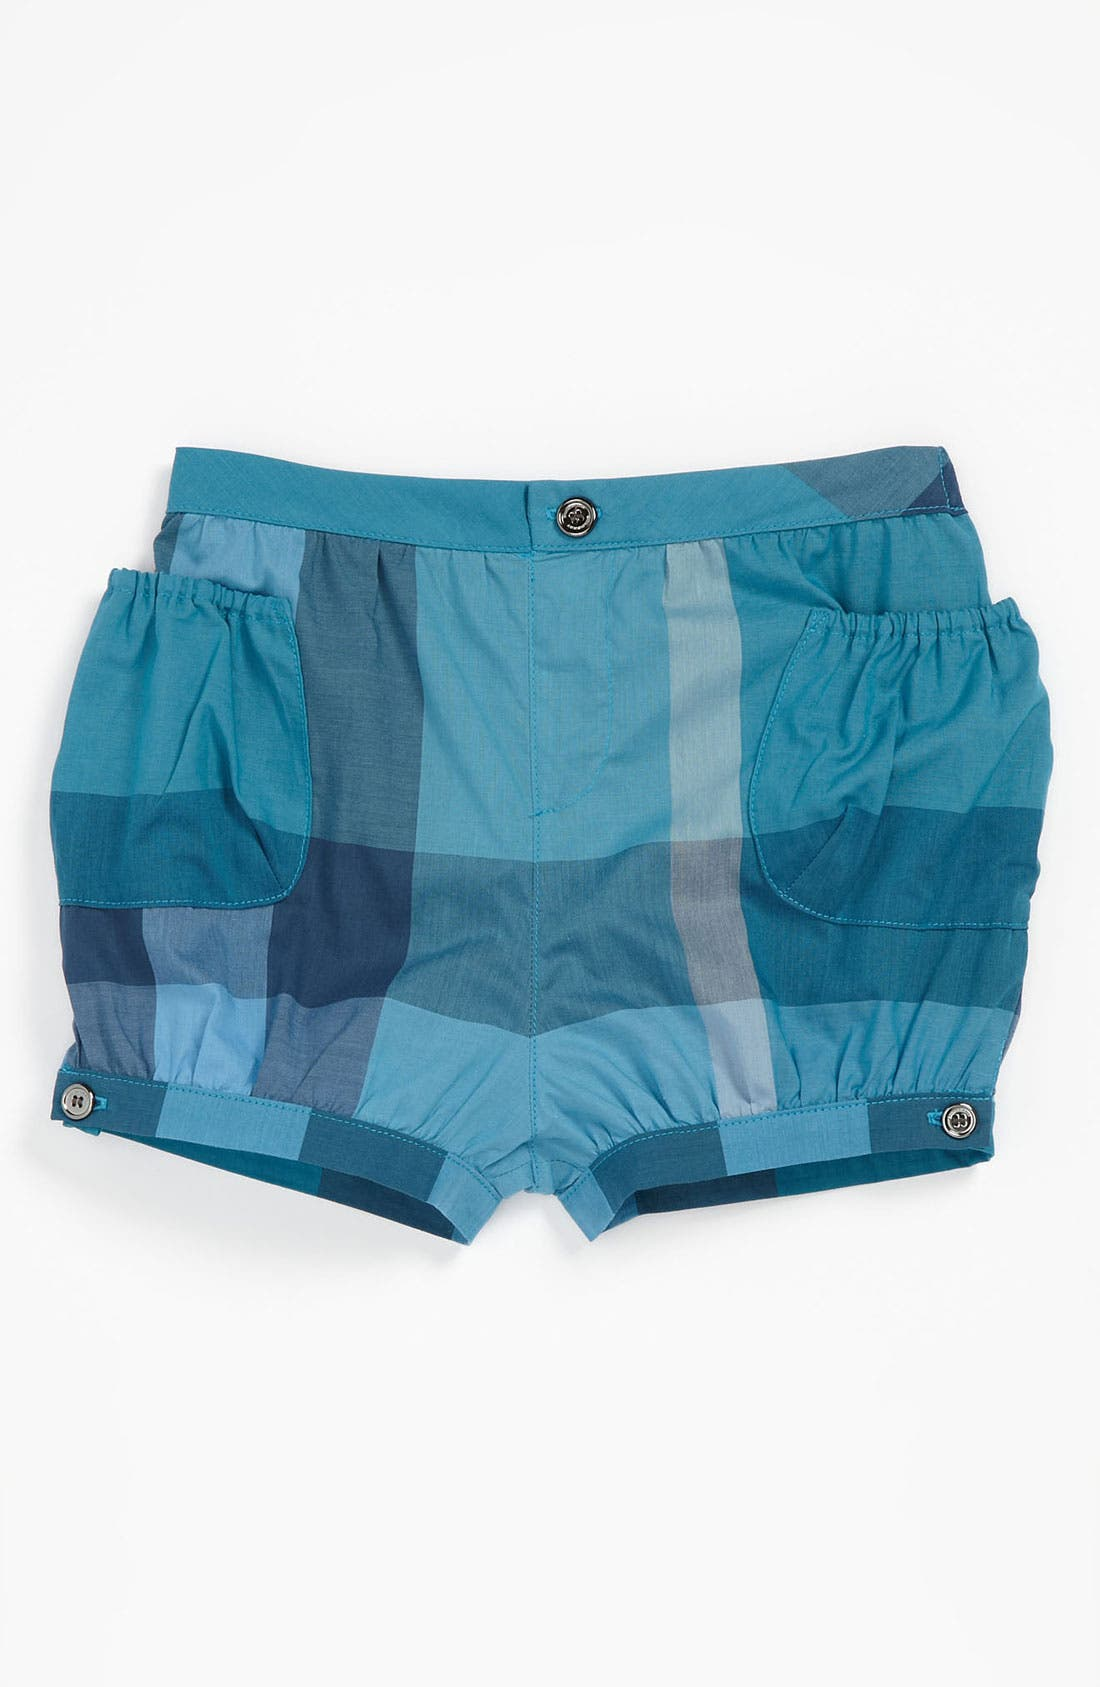 Alternate Image 1 Selected - Burberry 'Meghan' Shorts (Baby)